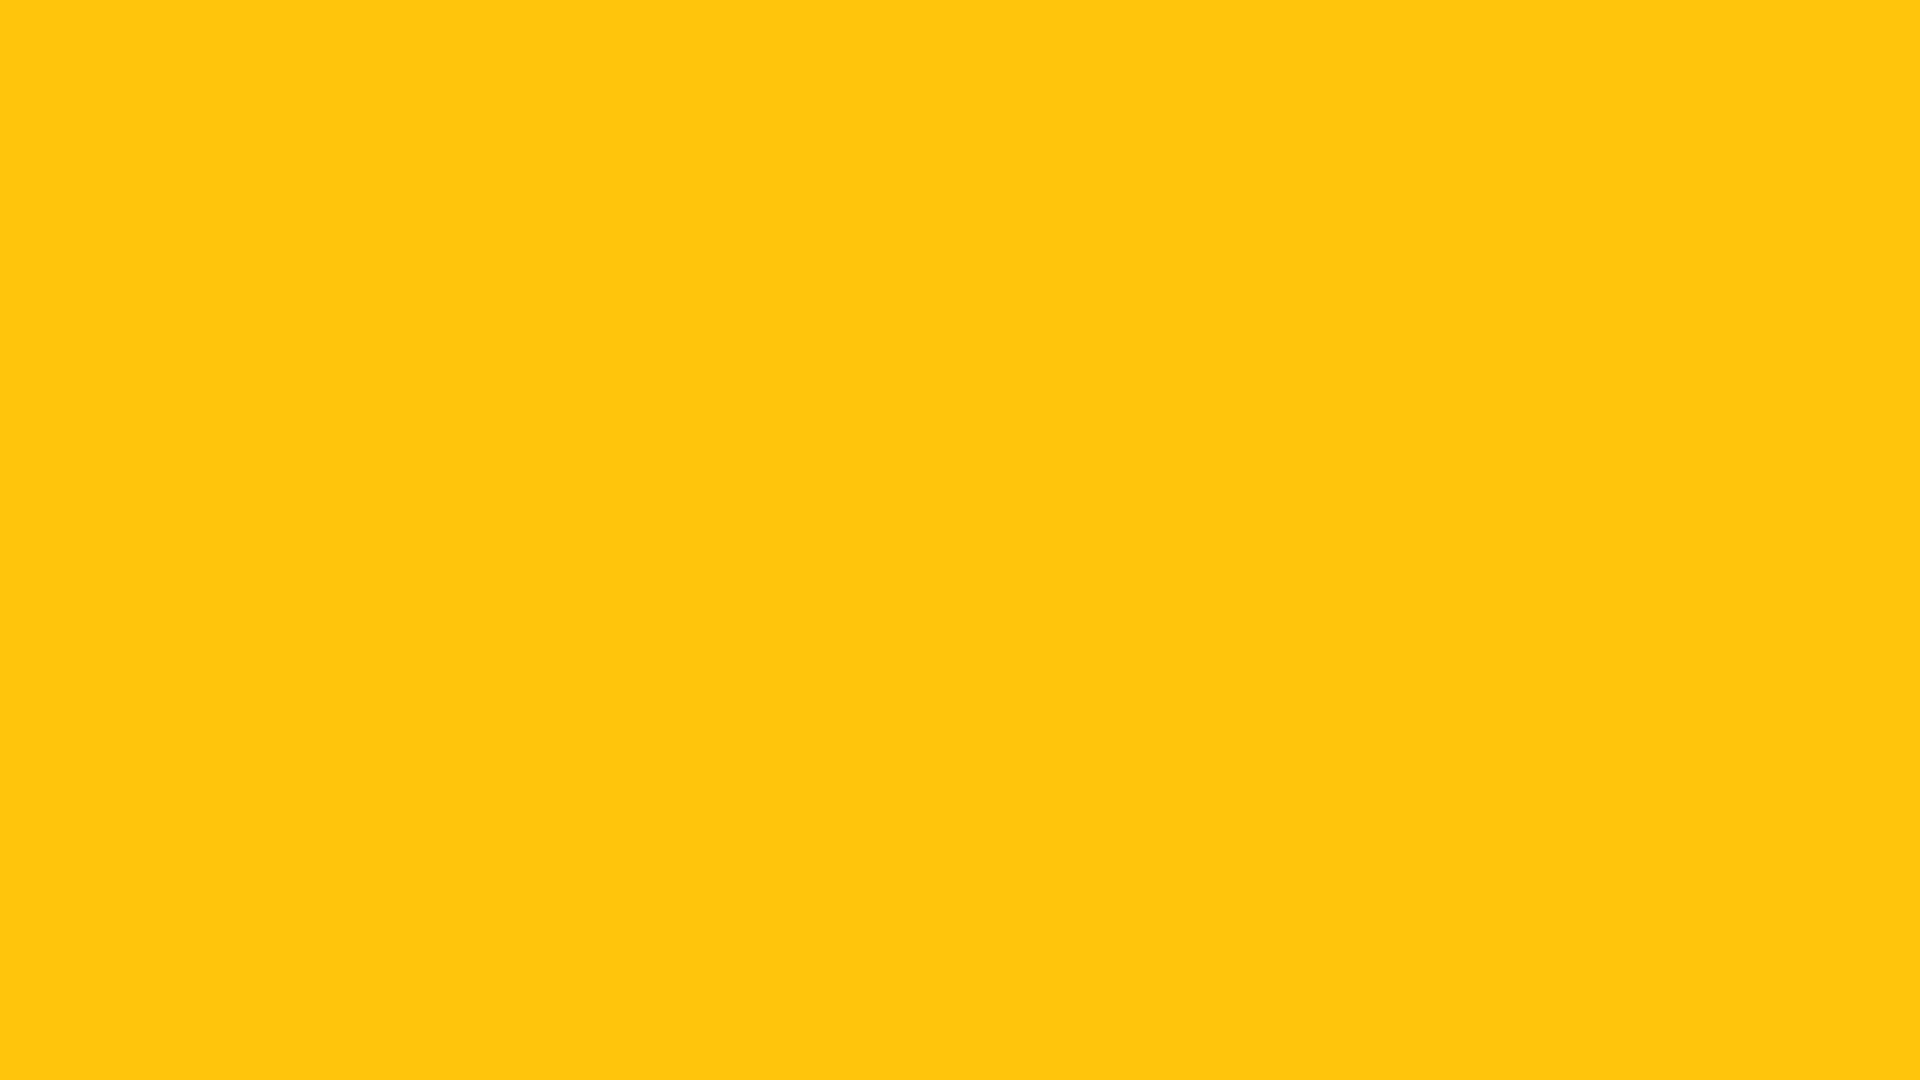 1920x1080 Mikado Yellow Solid Color Background